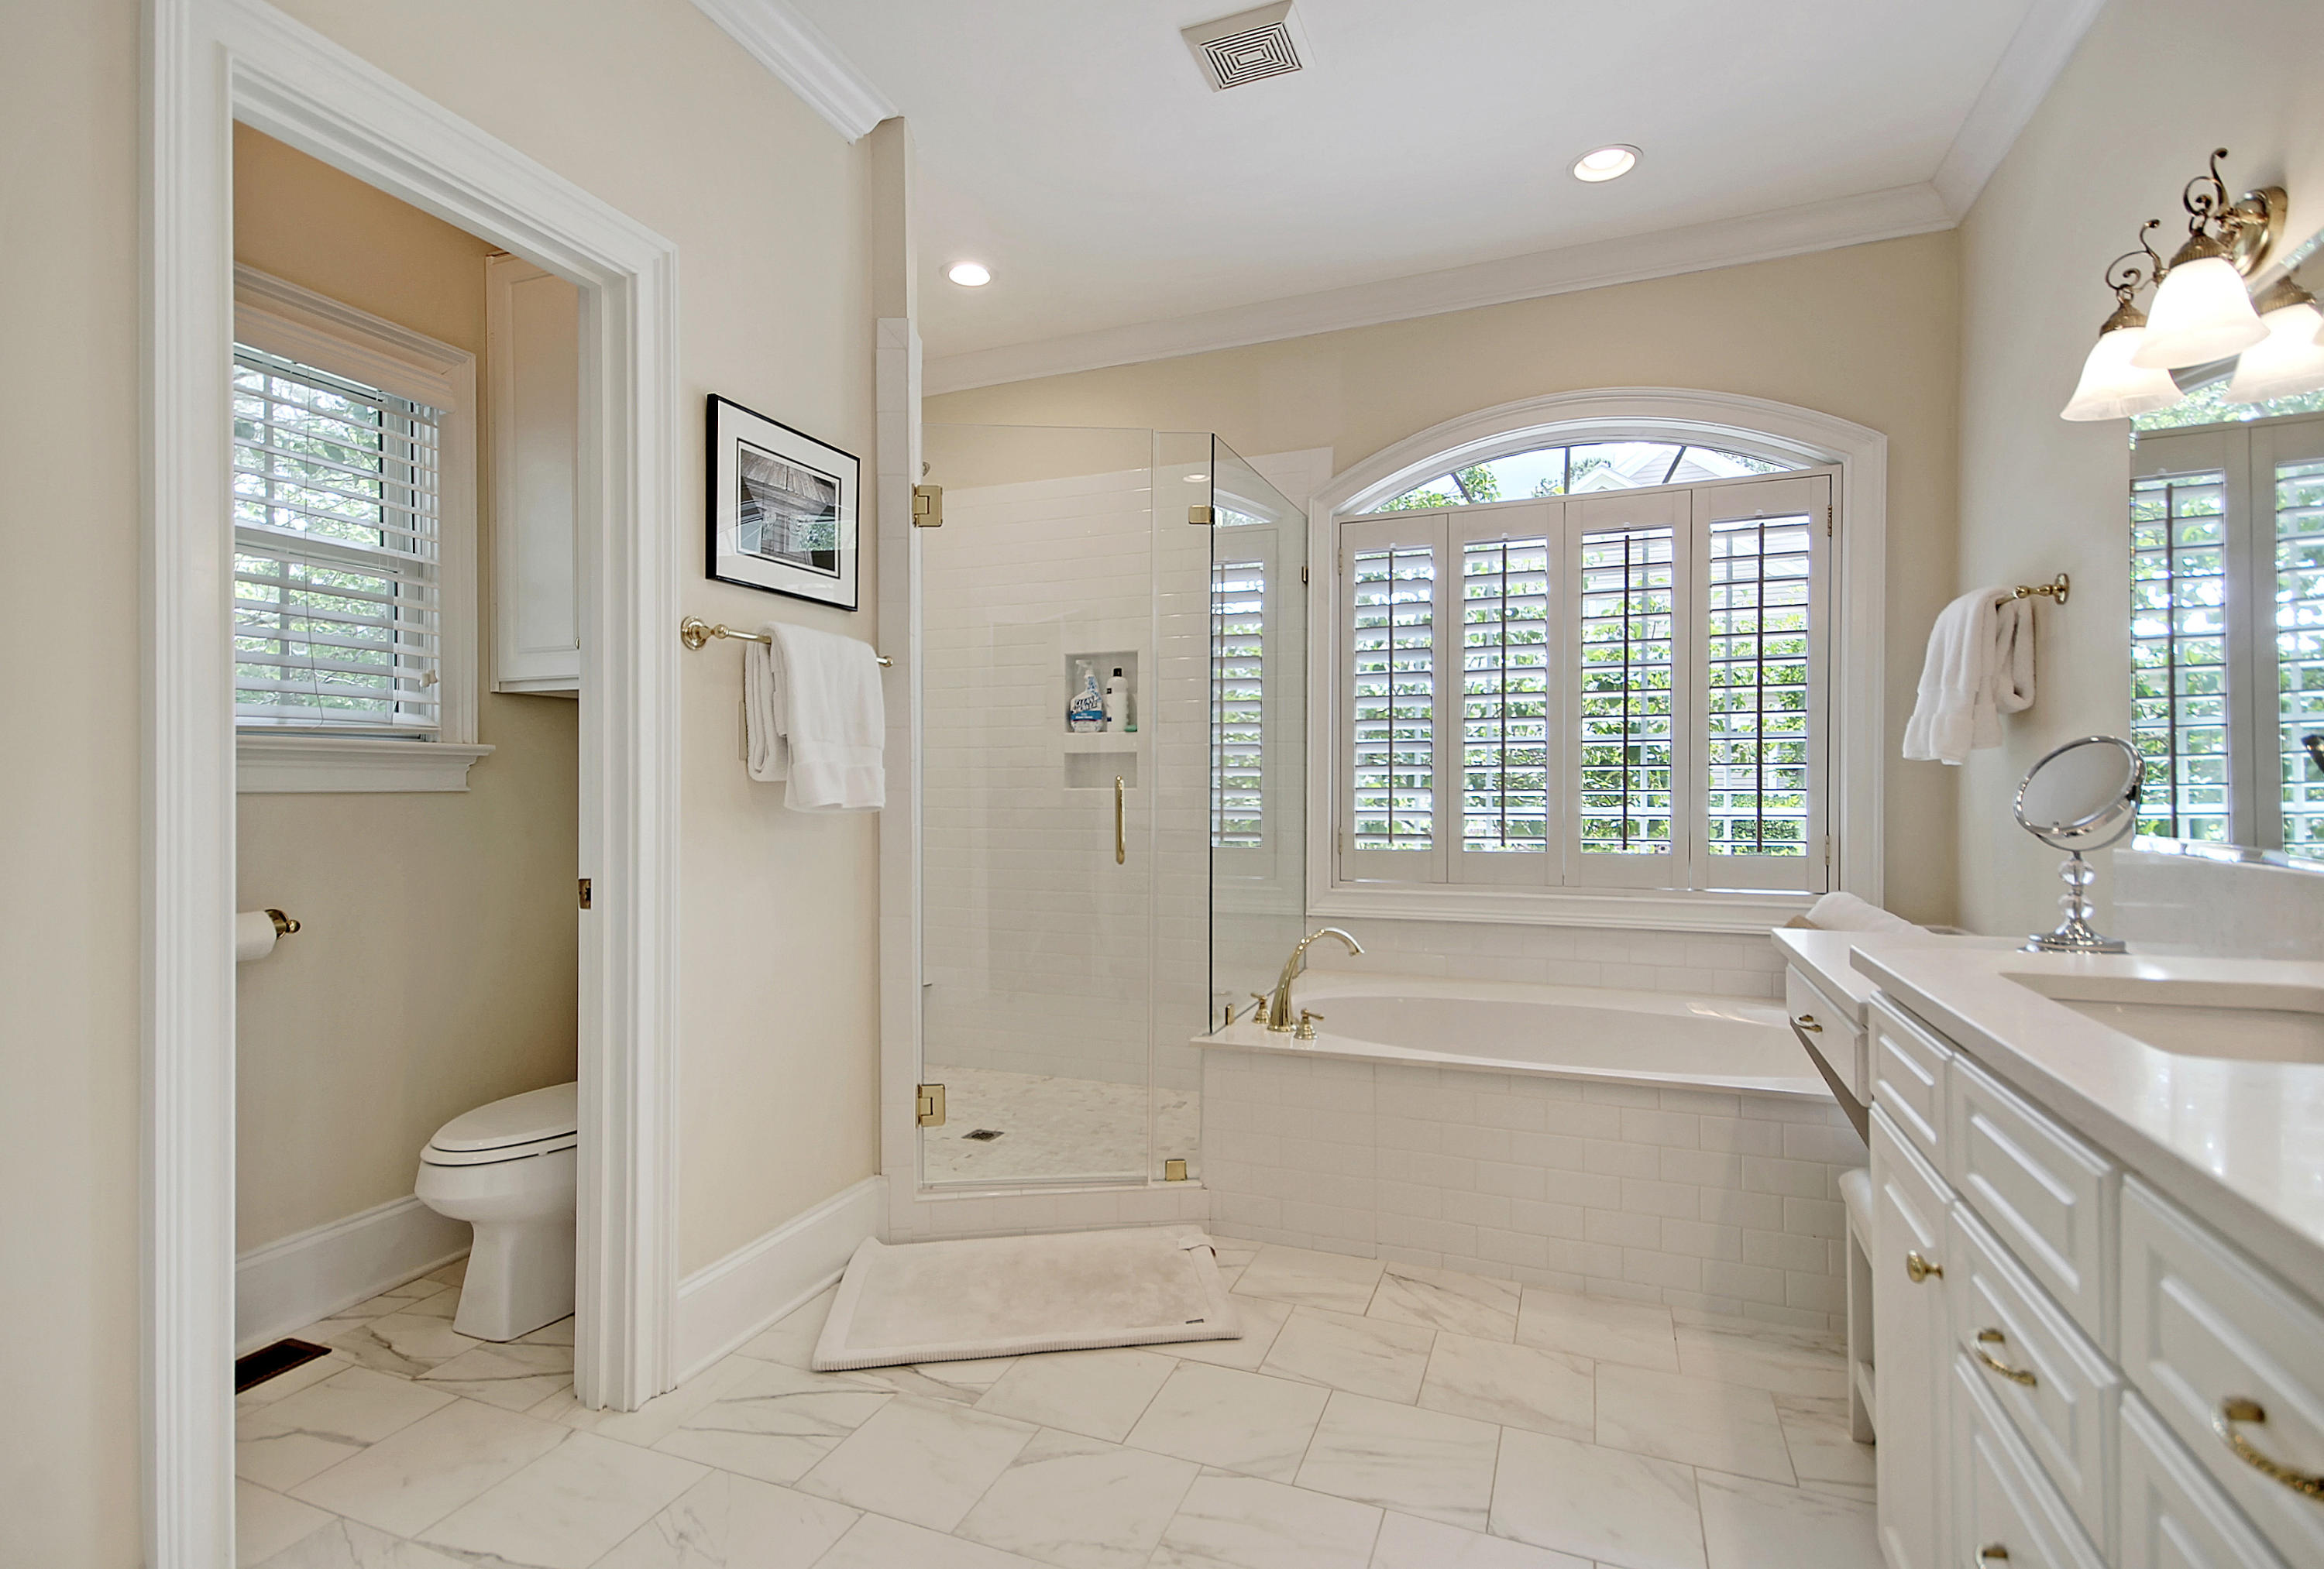 Dunes West Homes For Sale - 1829 Shell Ring, Mount Pleasant, SC - 14